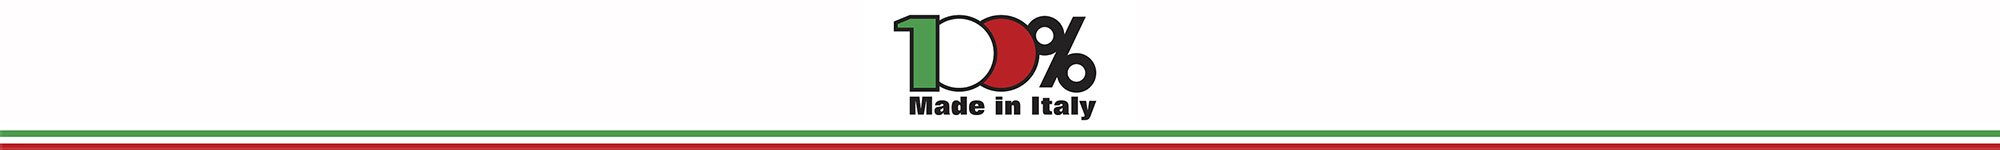 4YOU 100% Made in Italy